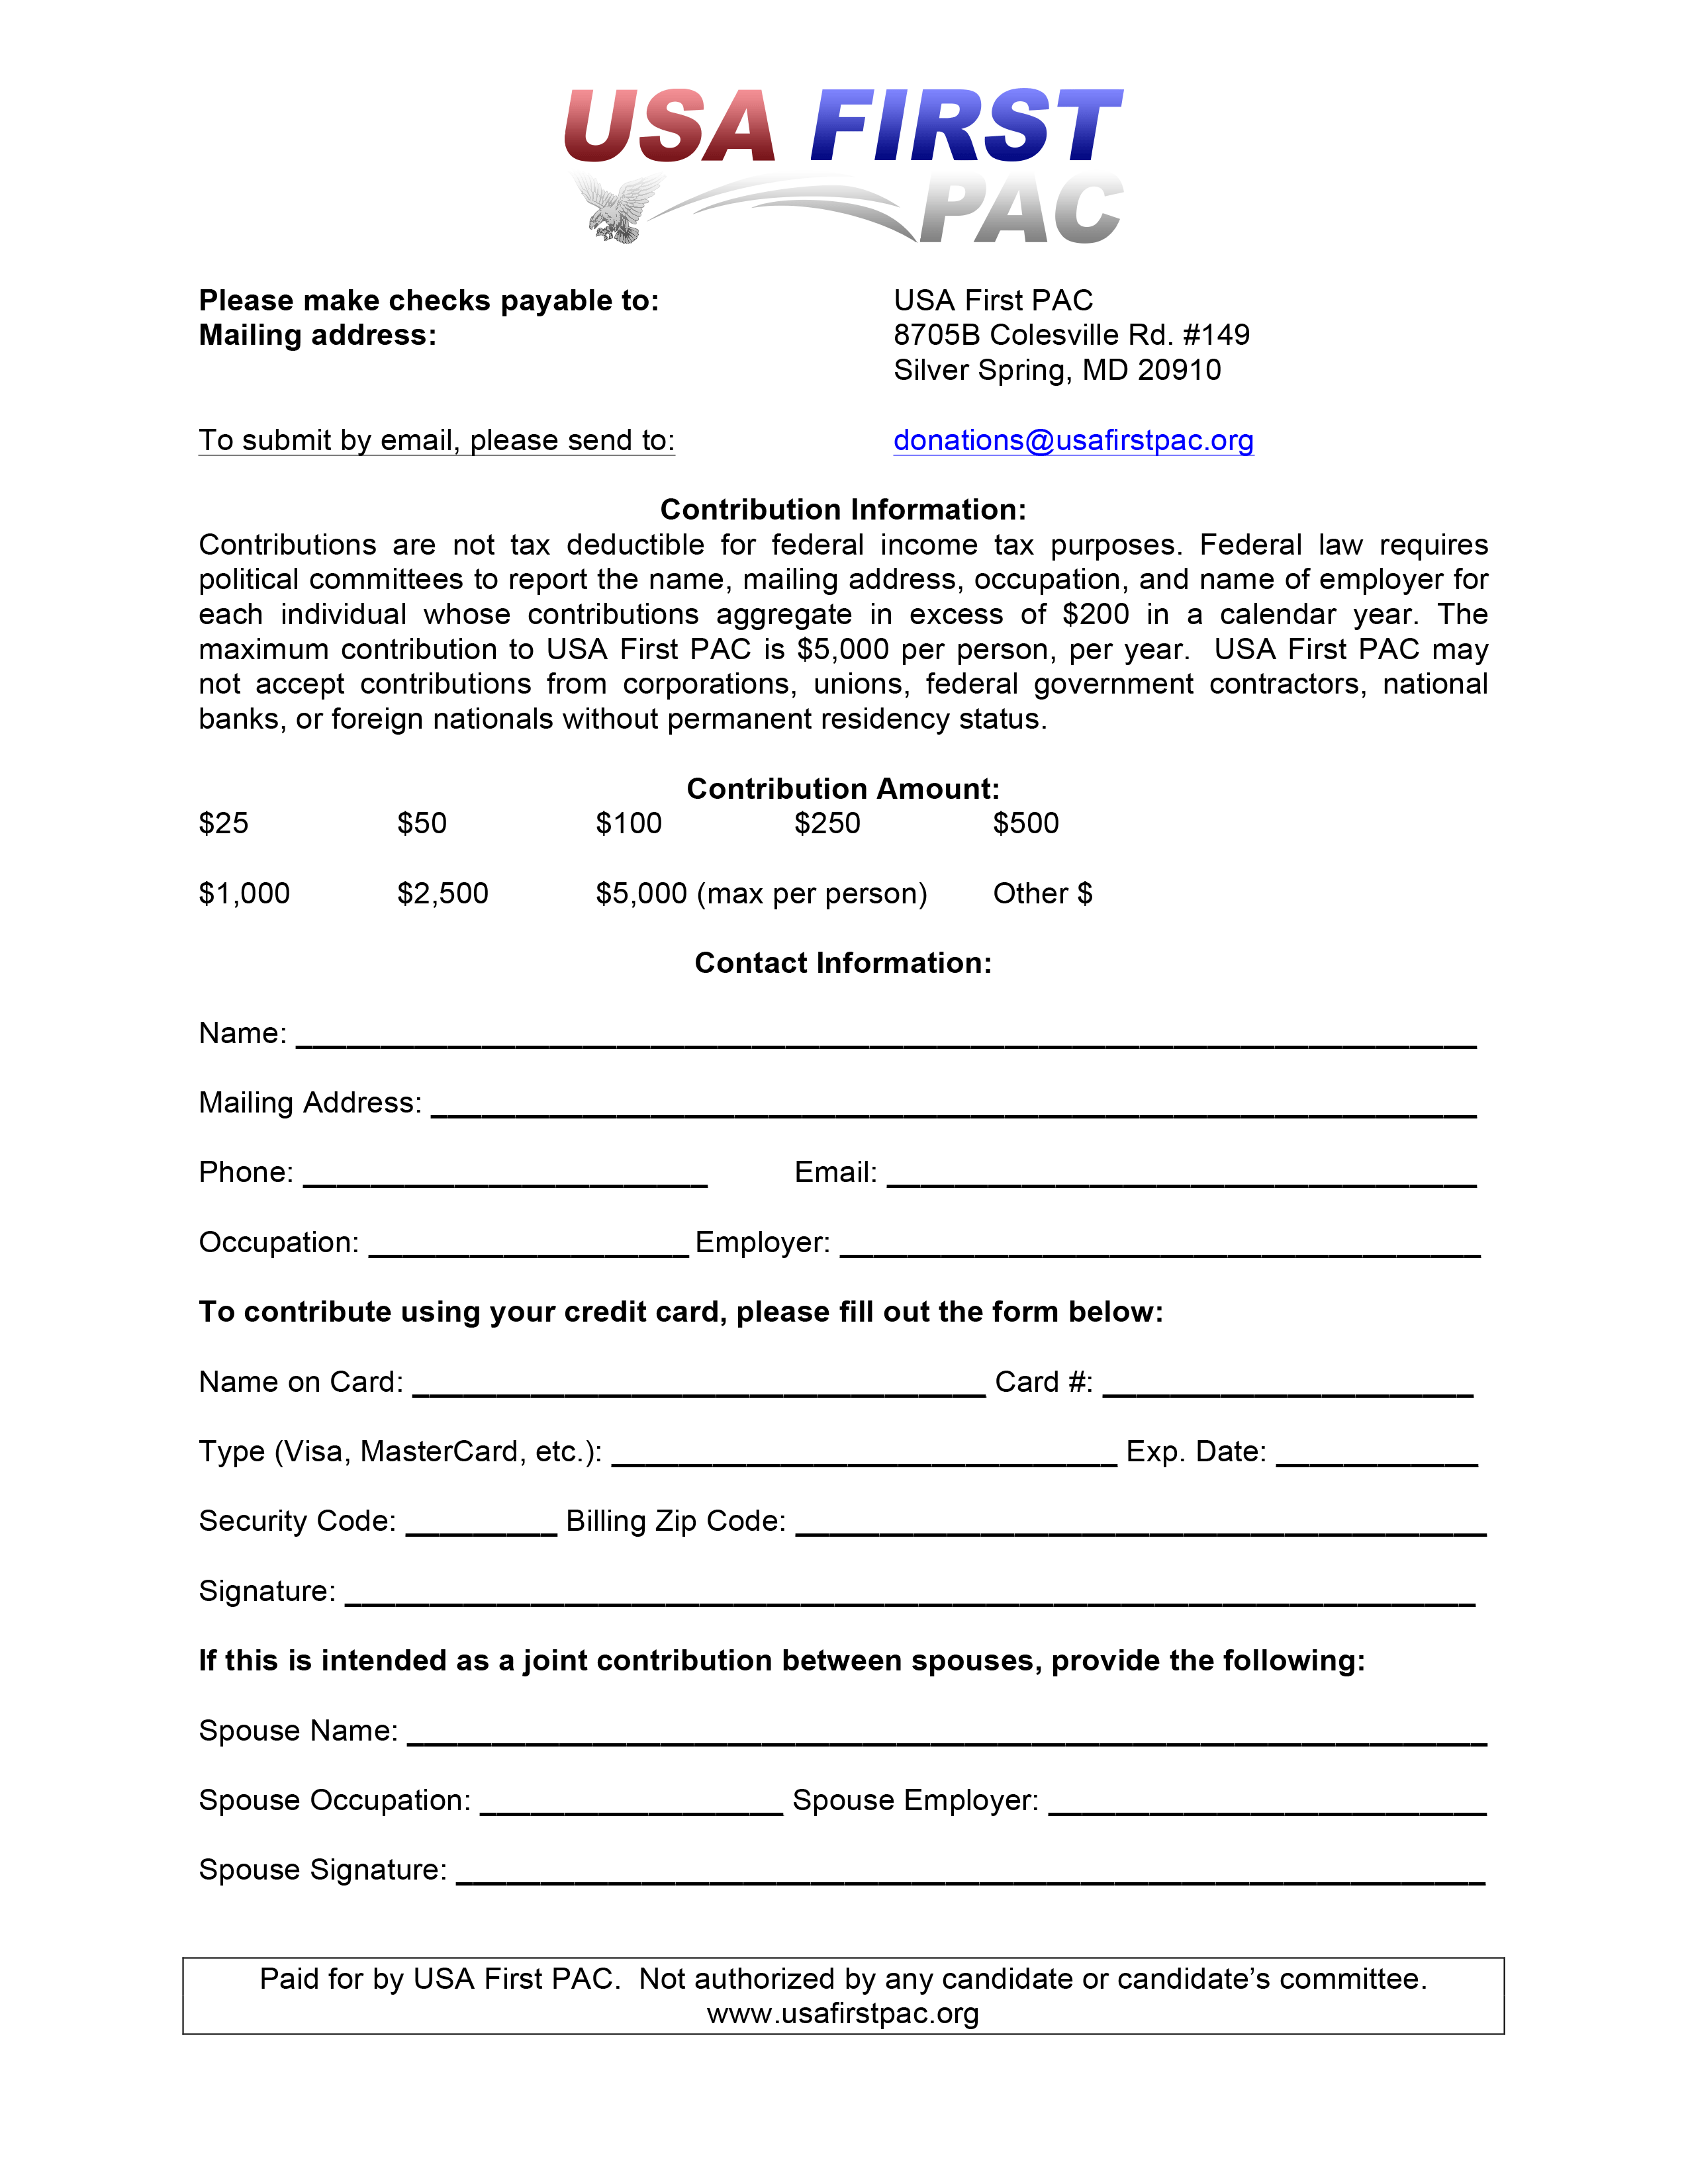 USA-First-PAC-Email-Donation-Form-Final.png